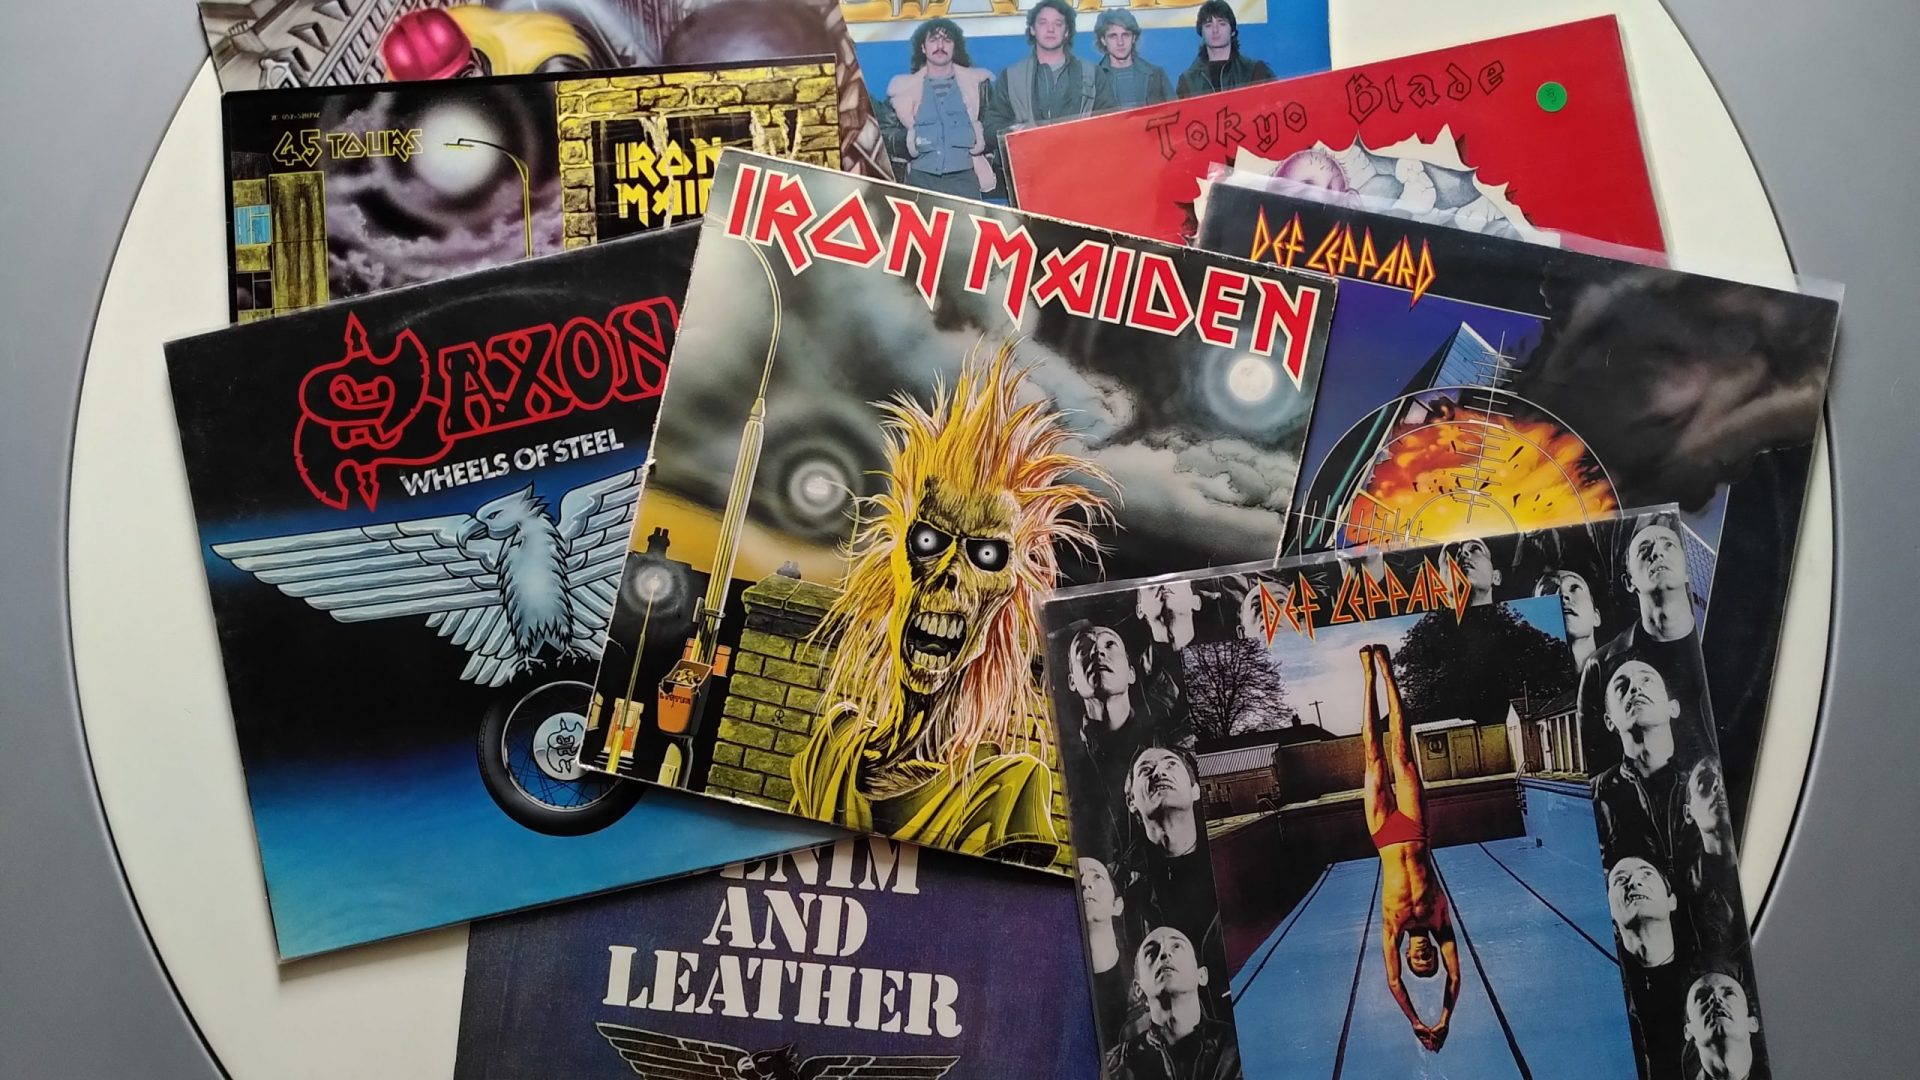 NWOBHM covers